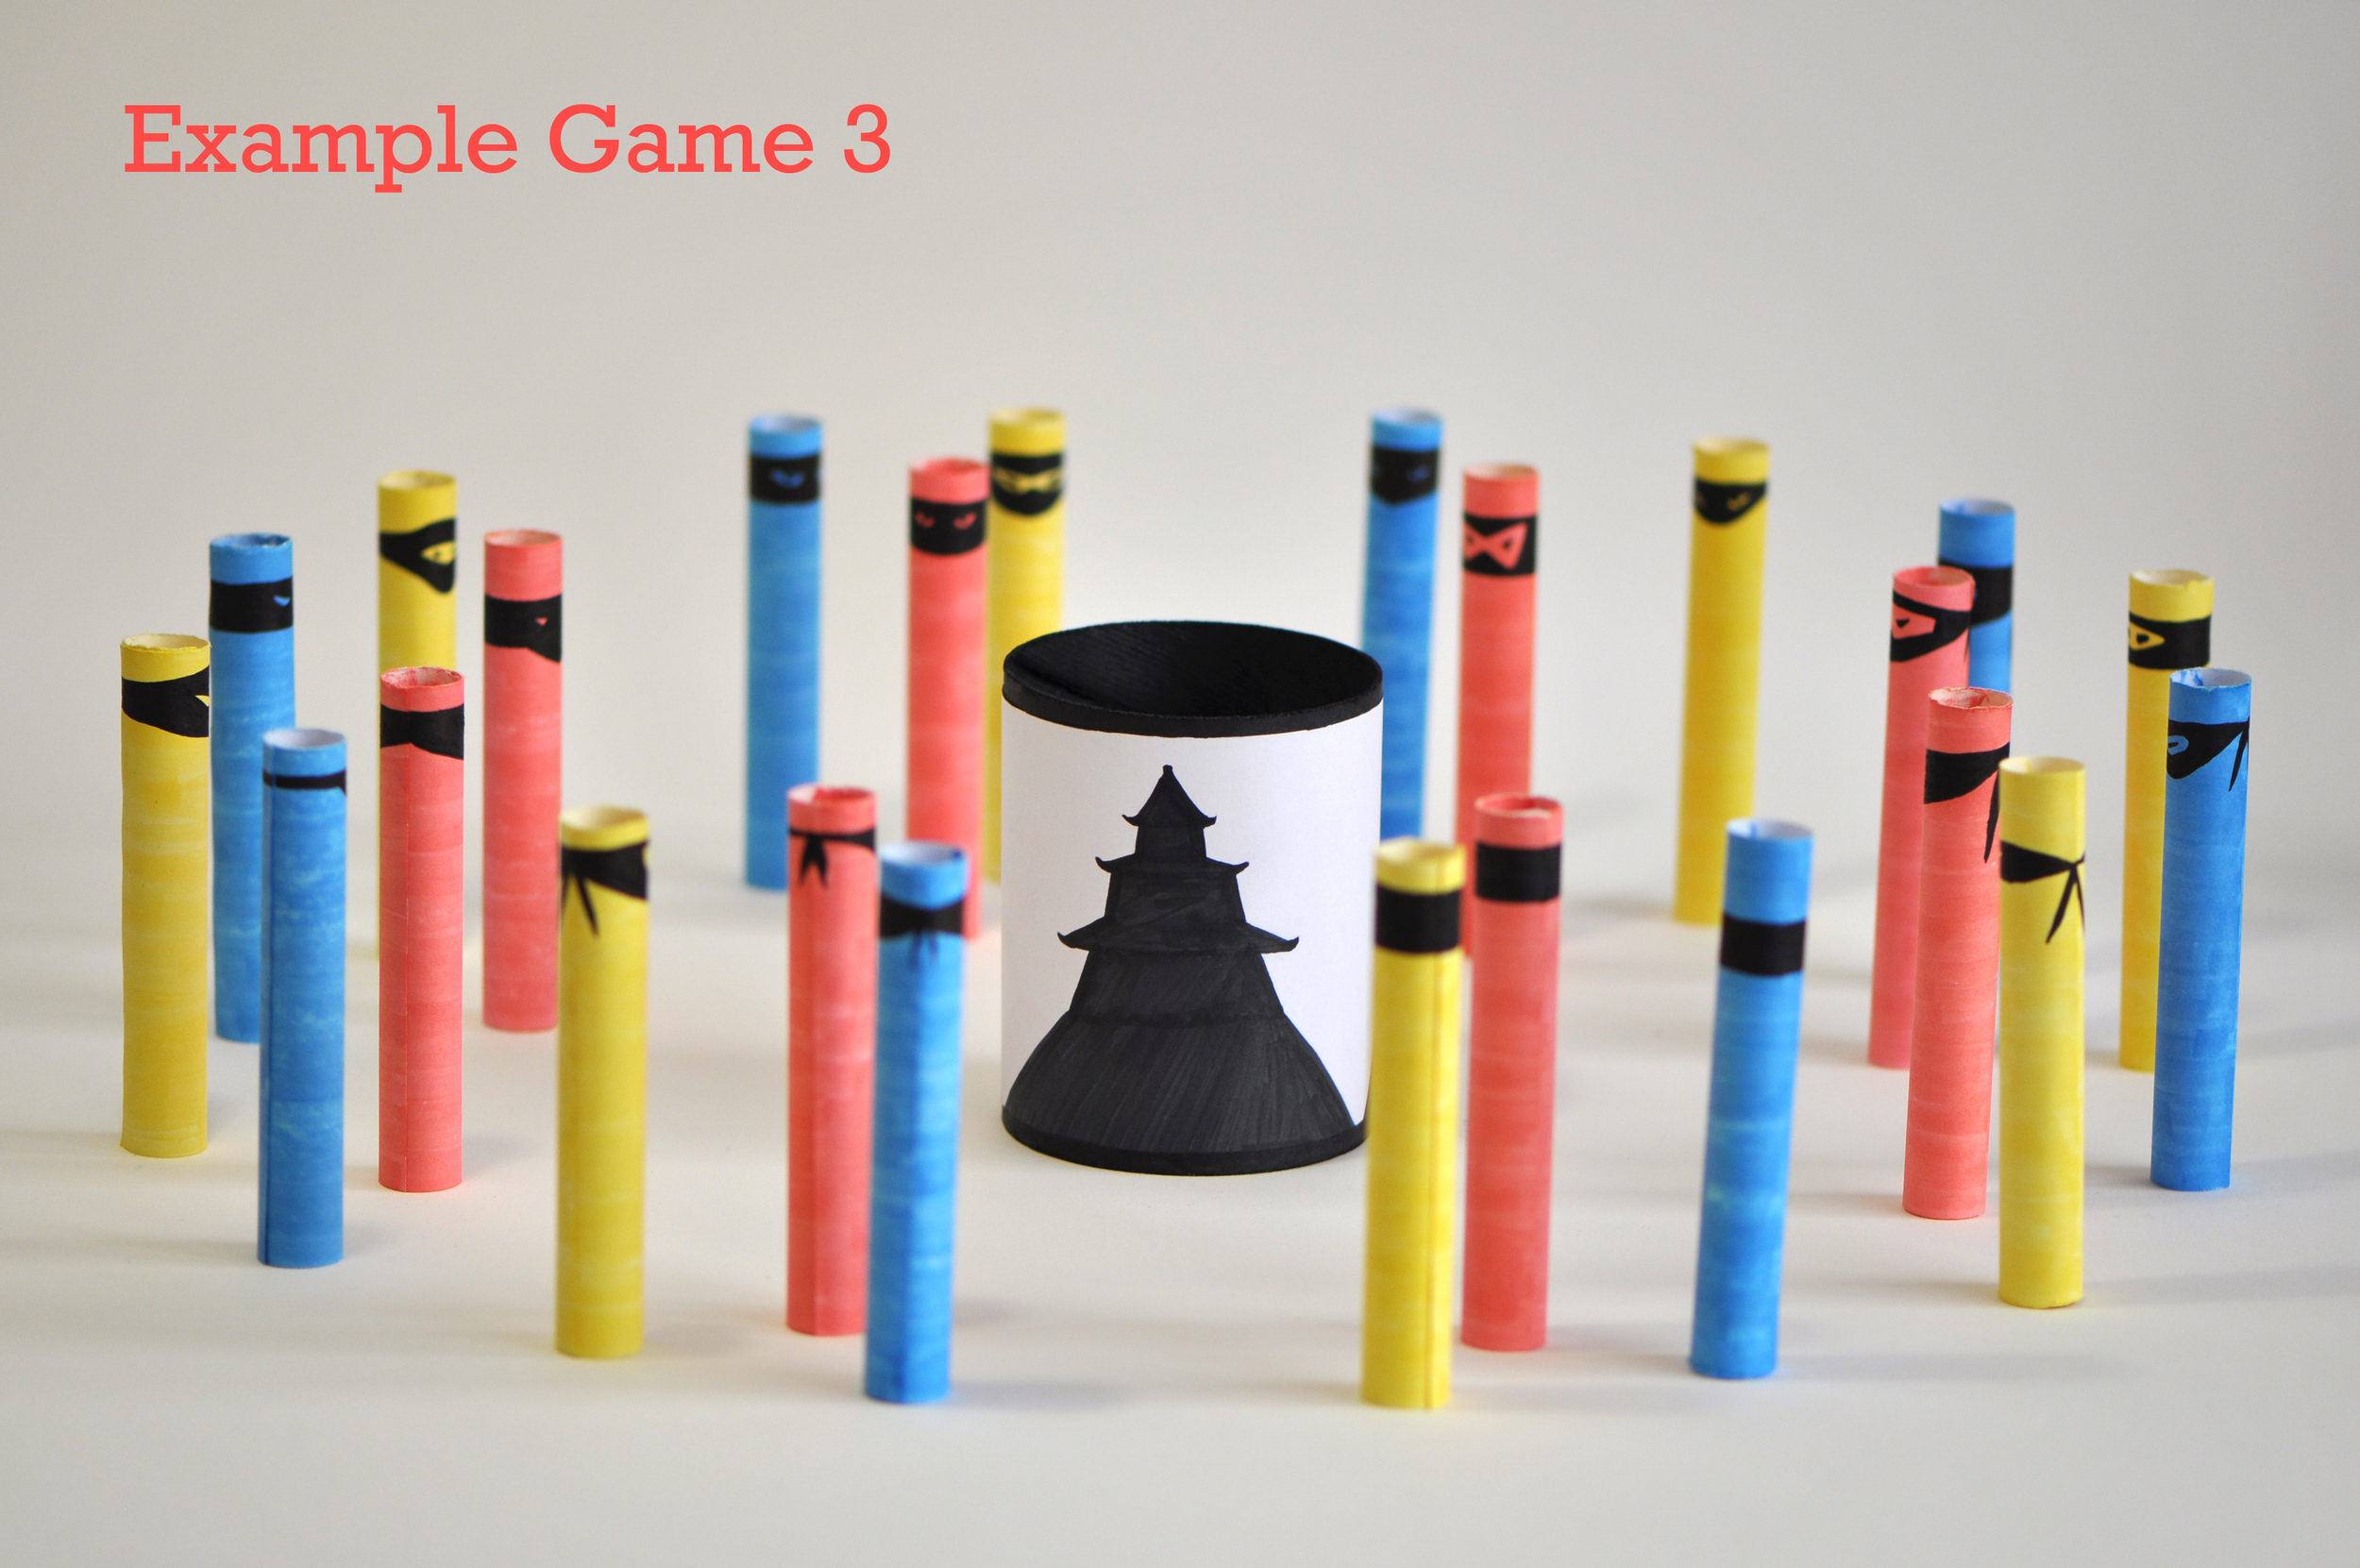 Two or more players (two players in this setup) each choose a color of ninjas and try to indirectly kill them by hitting the red ninjas first. The red ninjas are put back after being used each time. A player wins once all ninjas of the color he/she picked have been killed. The remaining players can continue until only one is left.